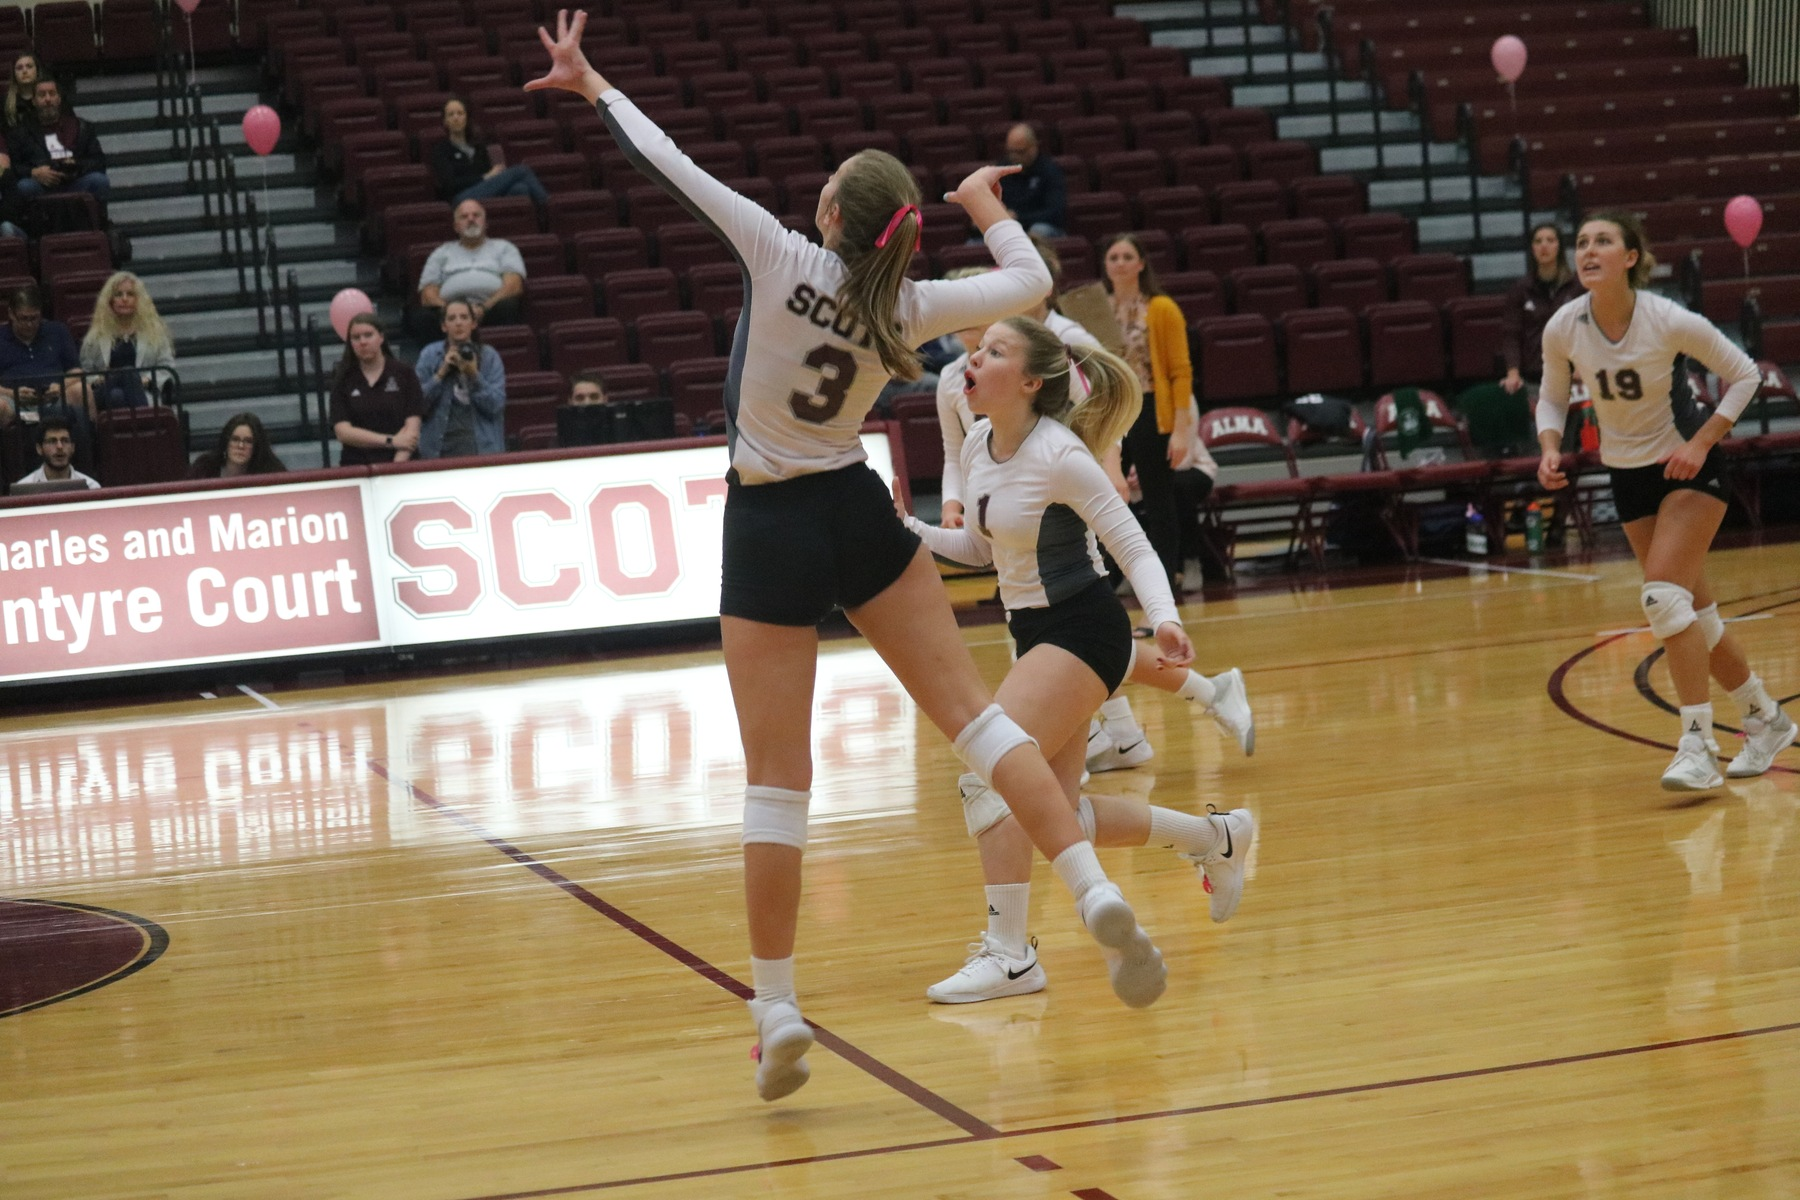 Career days by Majerle and Miller lead Volleyball to Victory